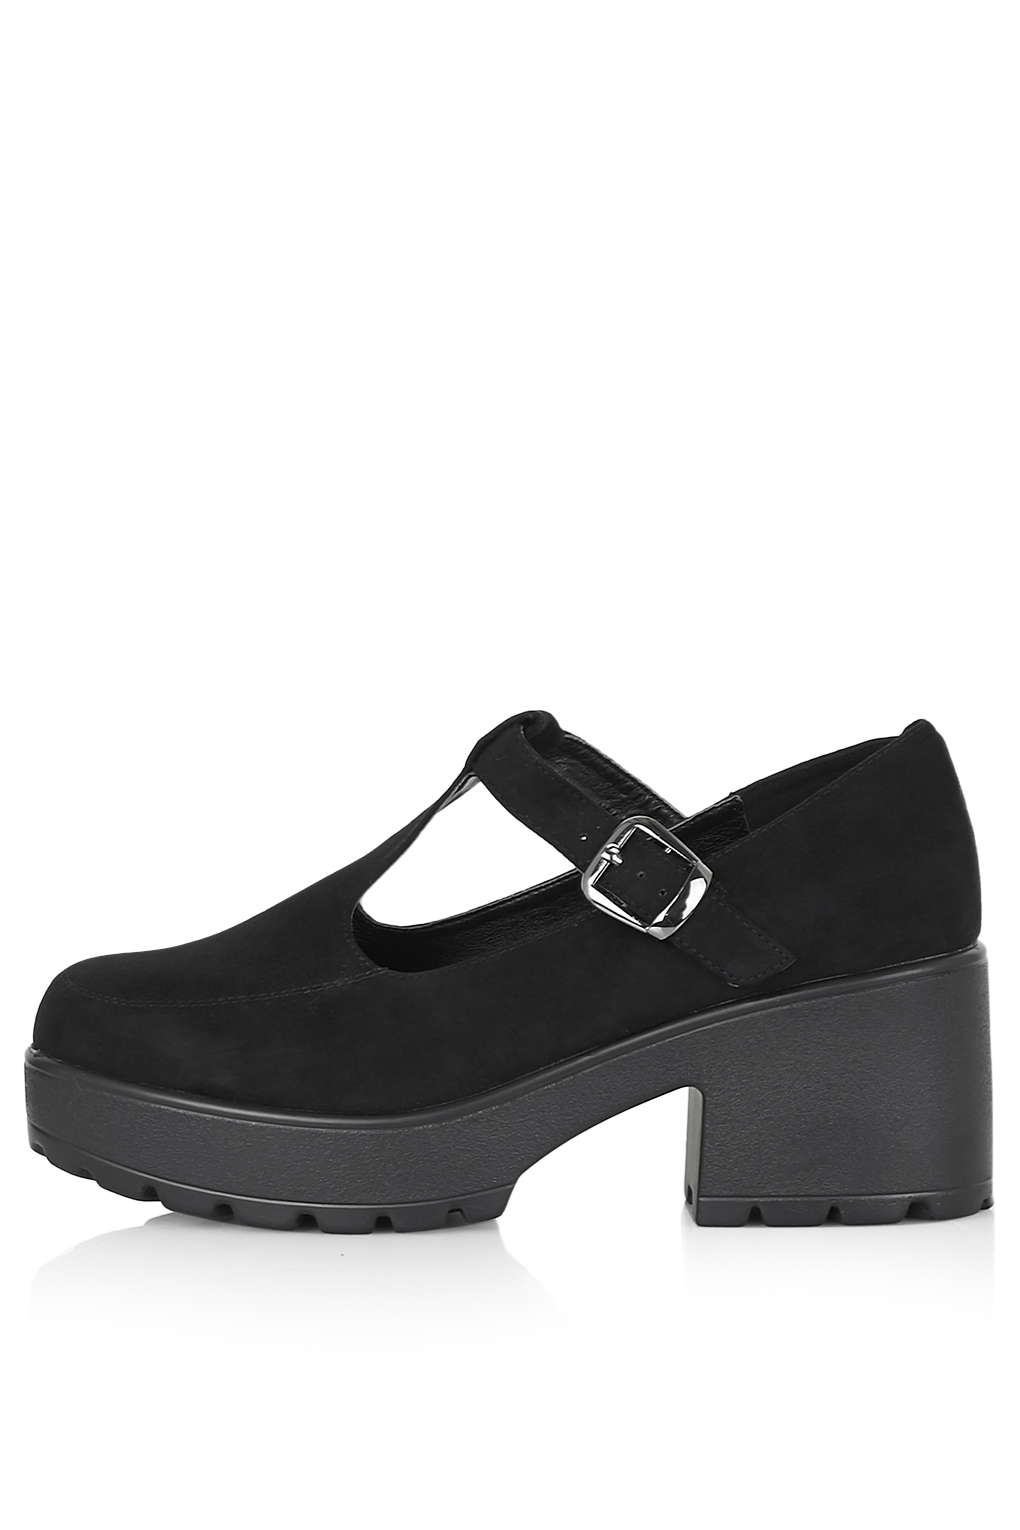 FINDER Mary Jane Shoes - Halloween - Clothing